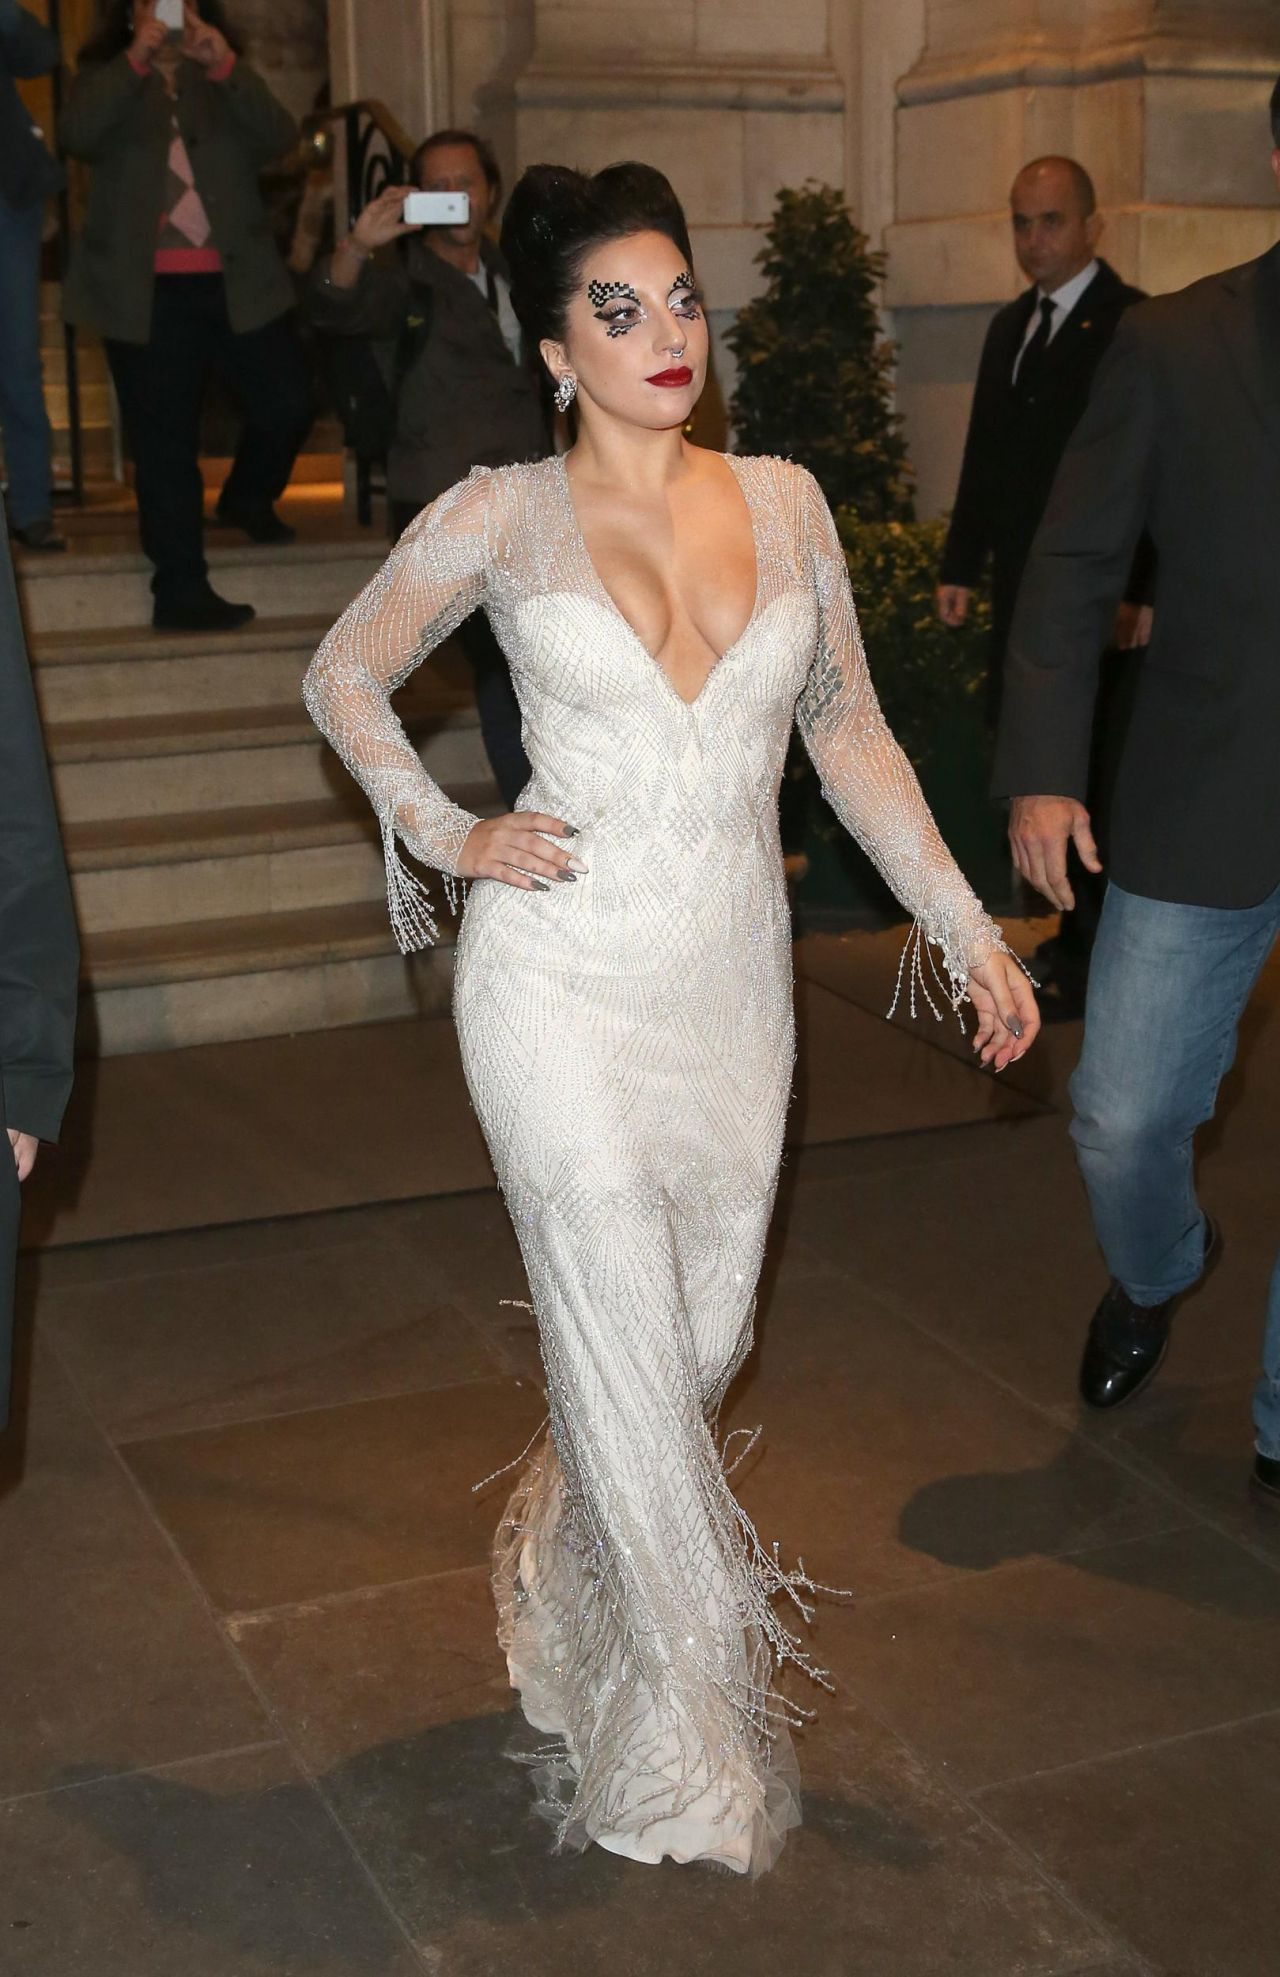 Lady Gaga in White Dress - Leaving Her Hotel in London - Octtober 2014